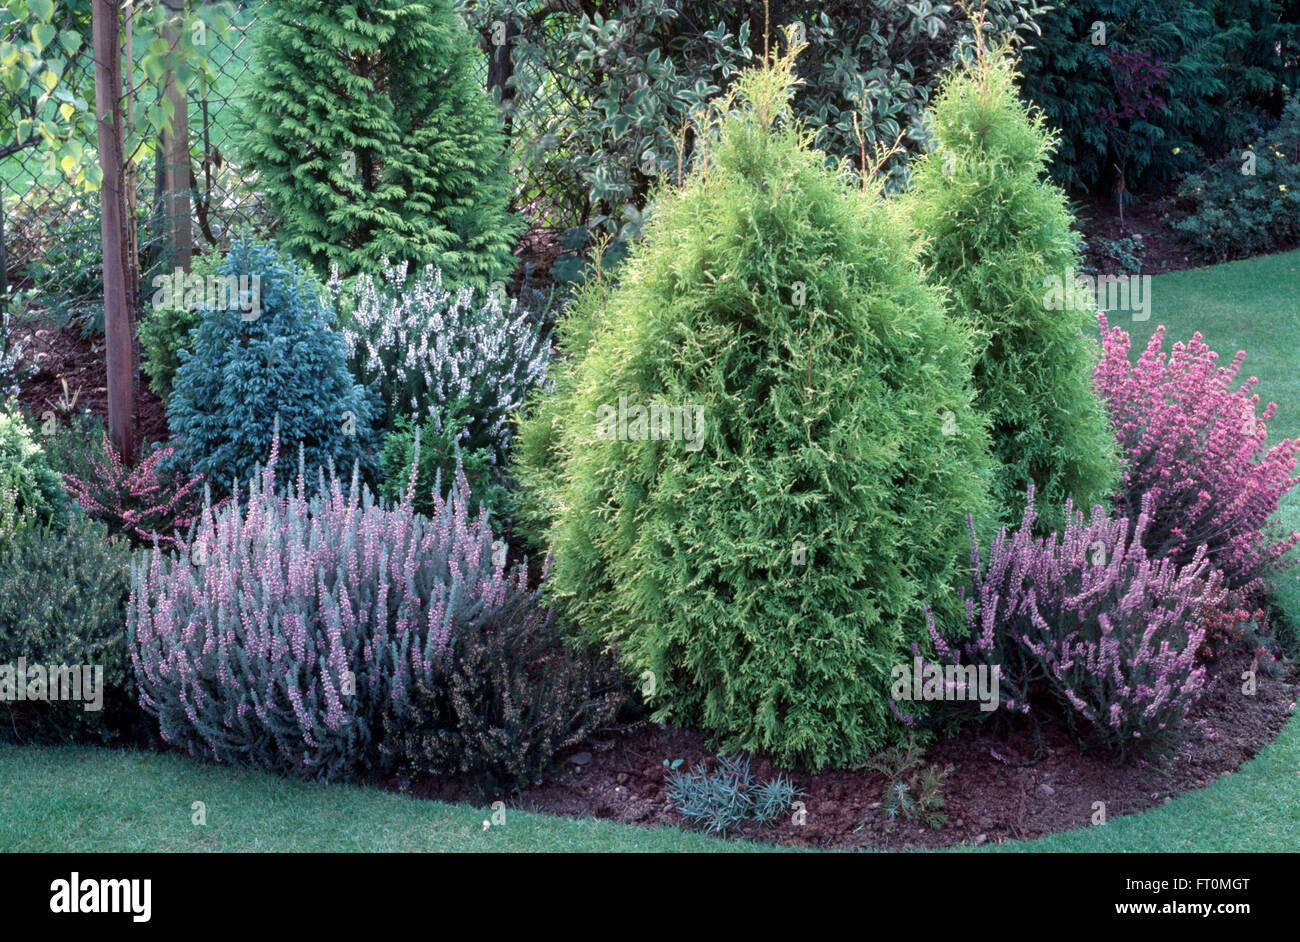 Low growing conifers and mauve heathers in a shrub border - Stock Image